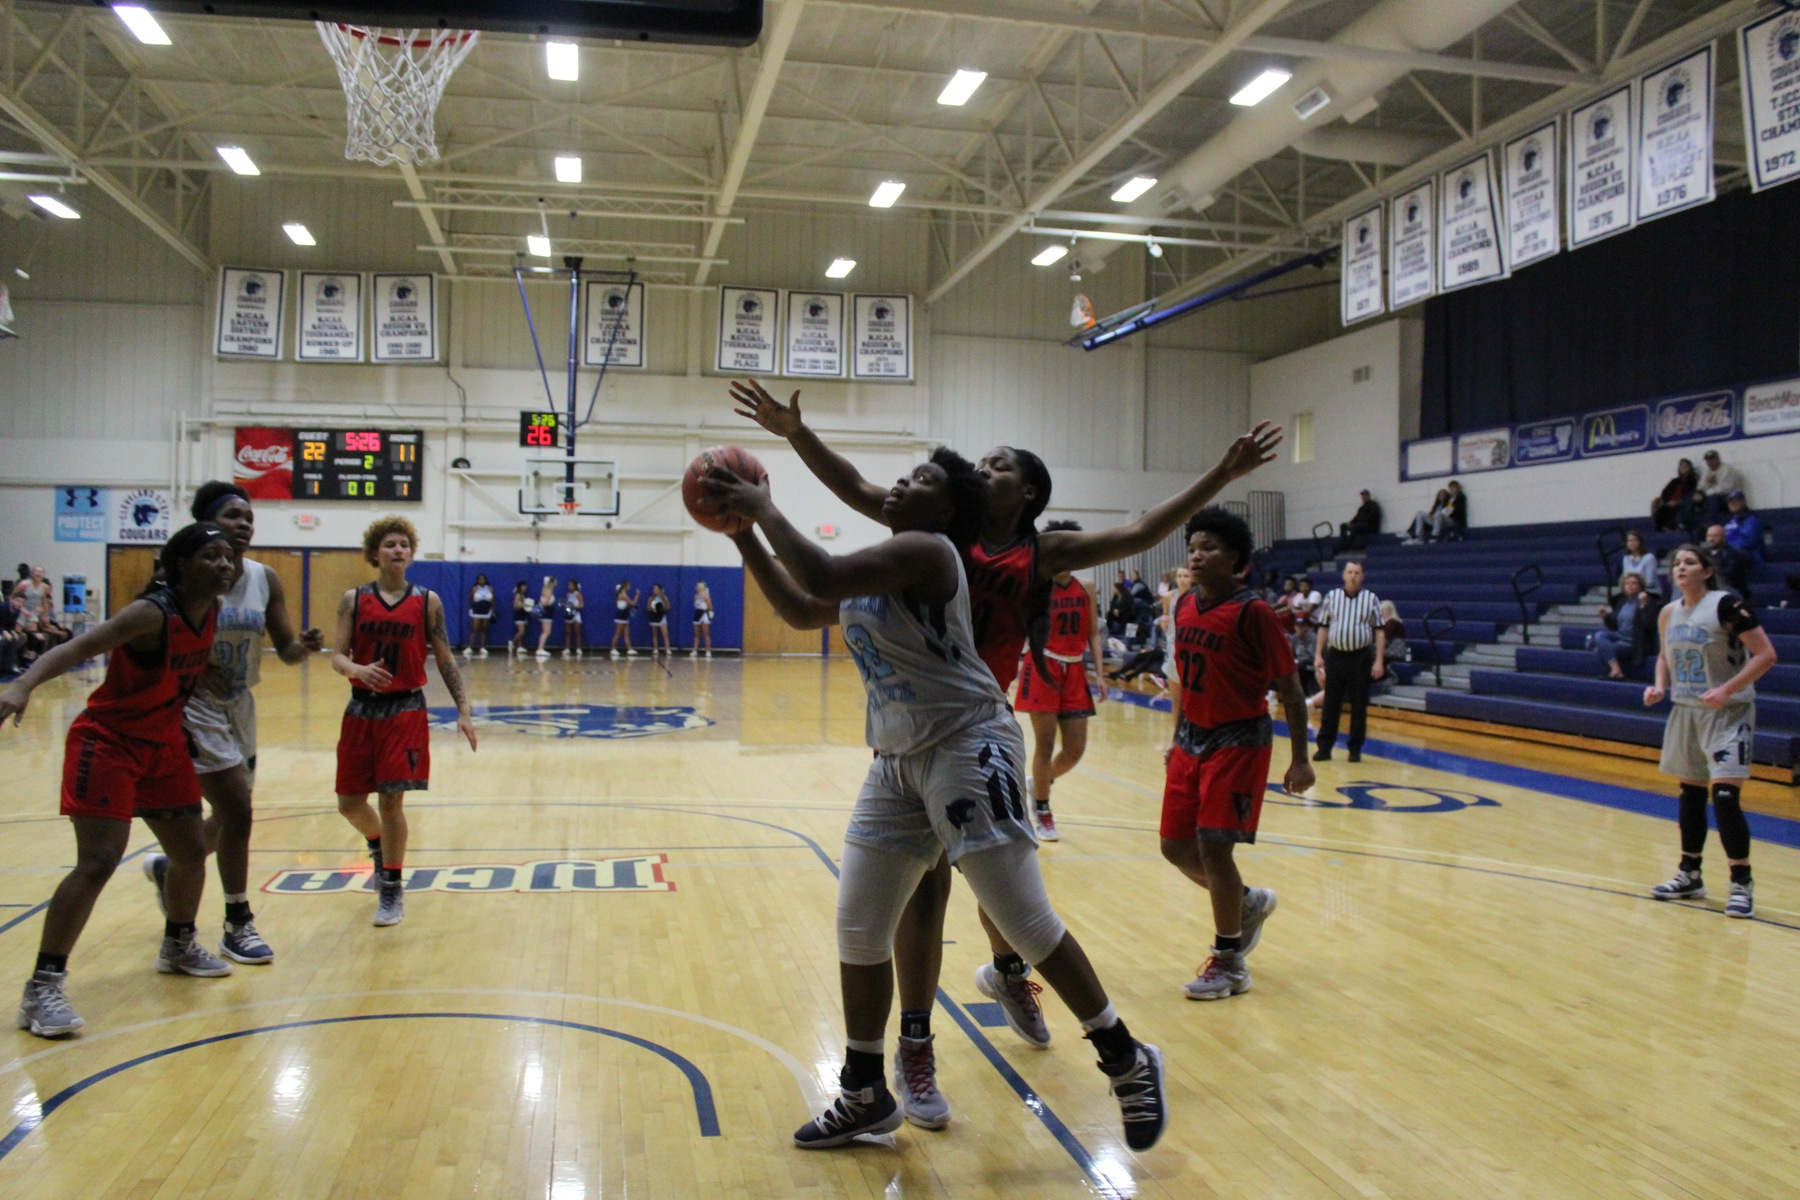 PREVIEW: Lady Cougars Start Last Road Trip of Season